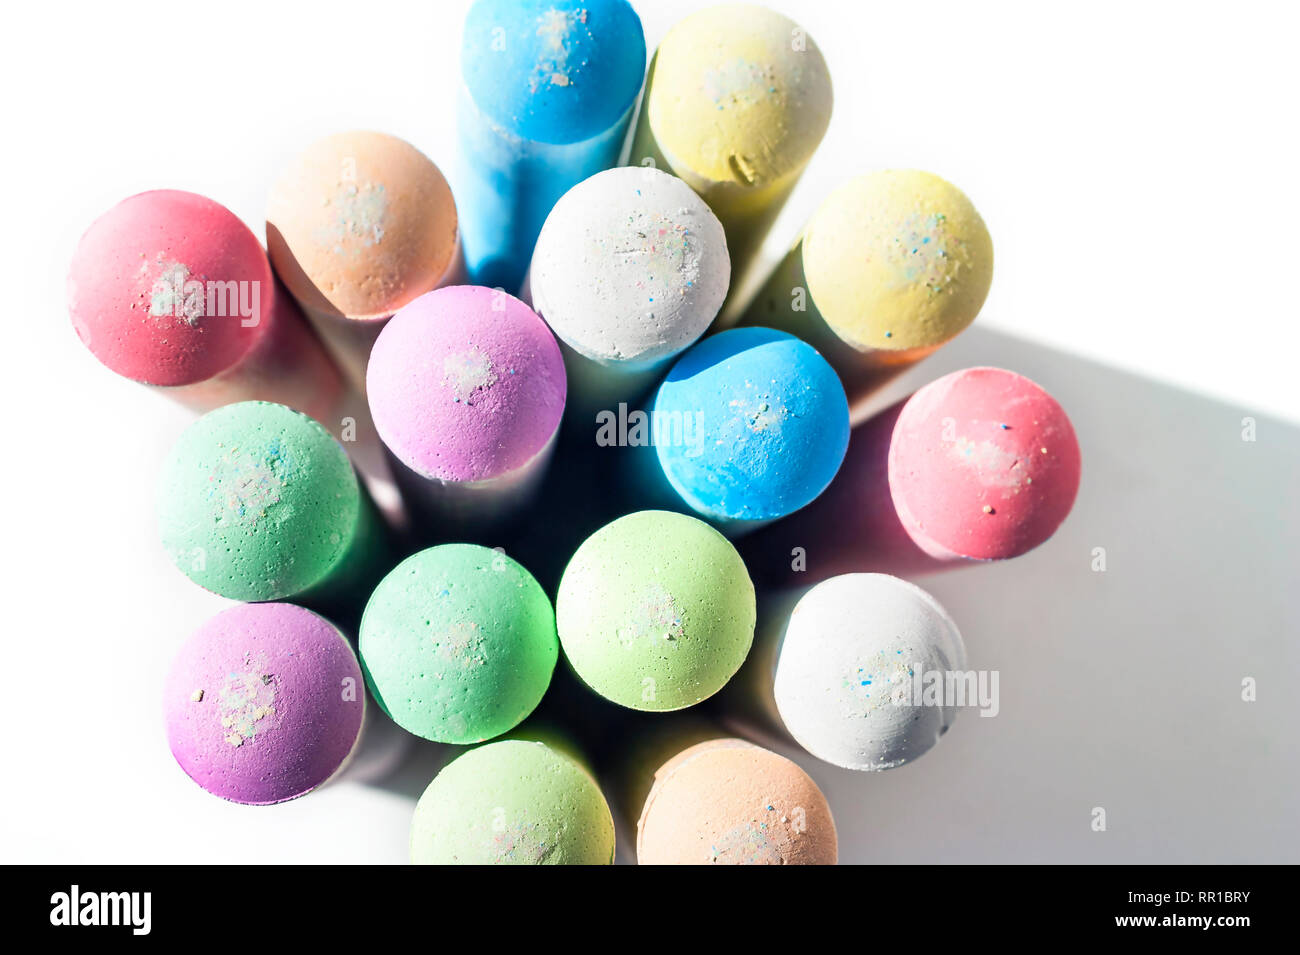 Pack of Jumbo Sidewalk Chalk, Assorted Colors, Bold Tips Casting Shadow on White Background. Top View. - Stock Image